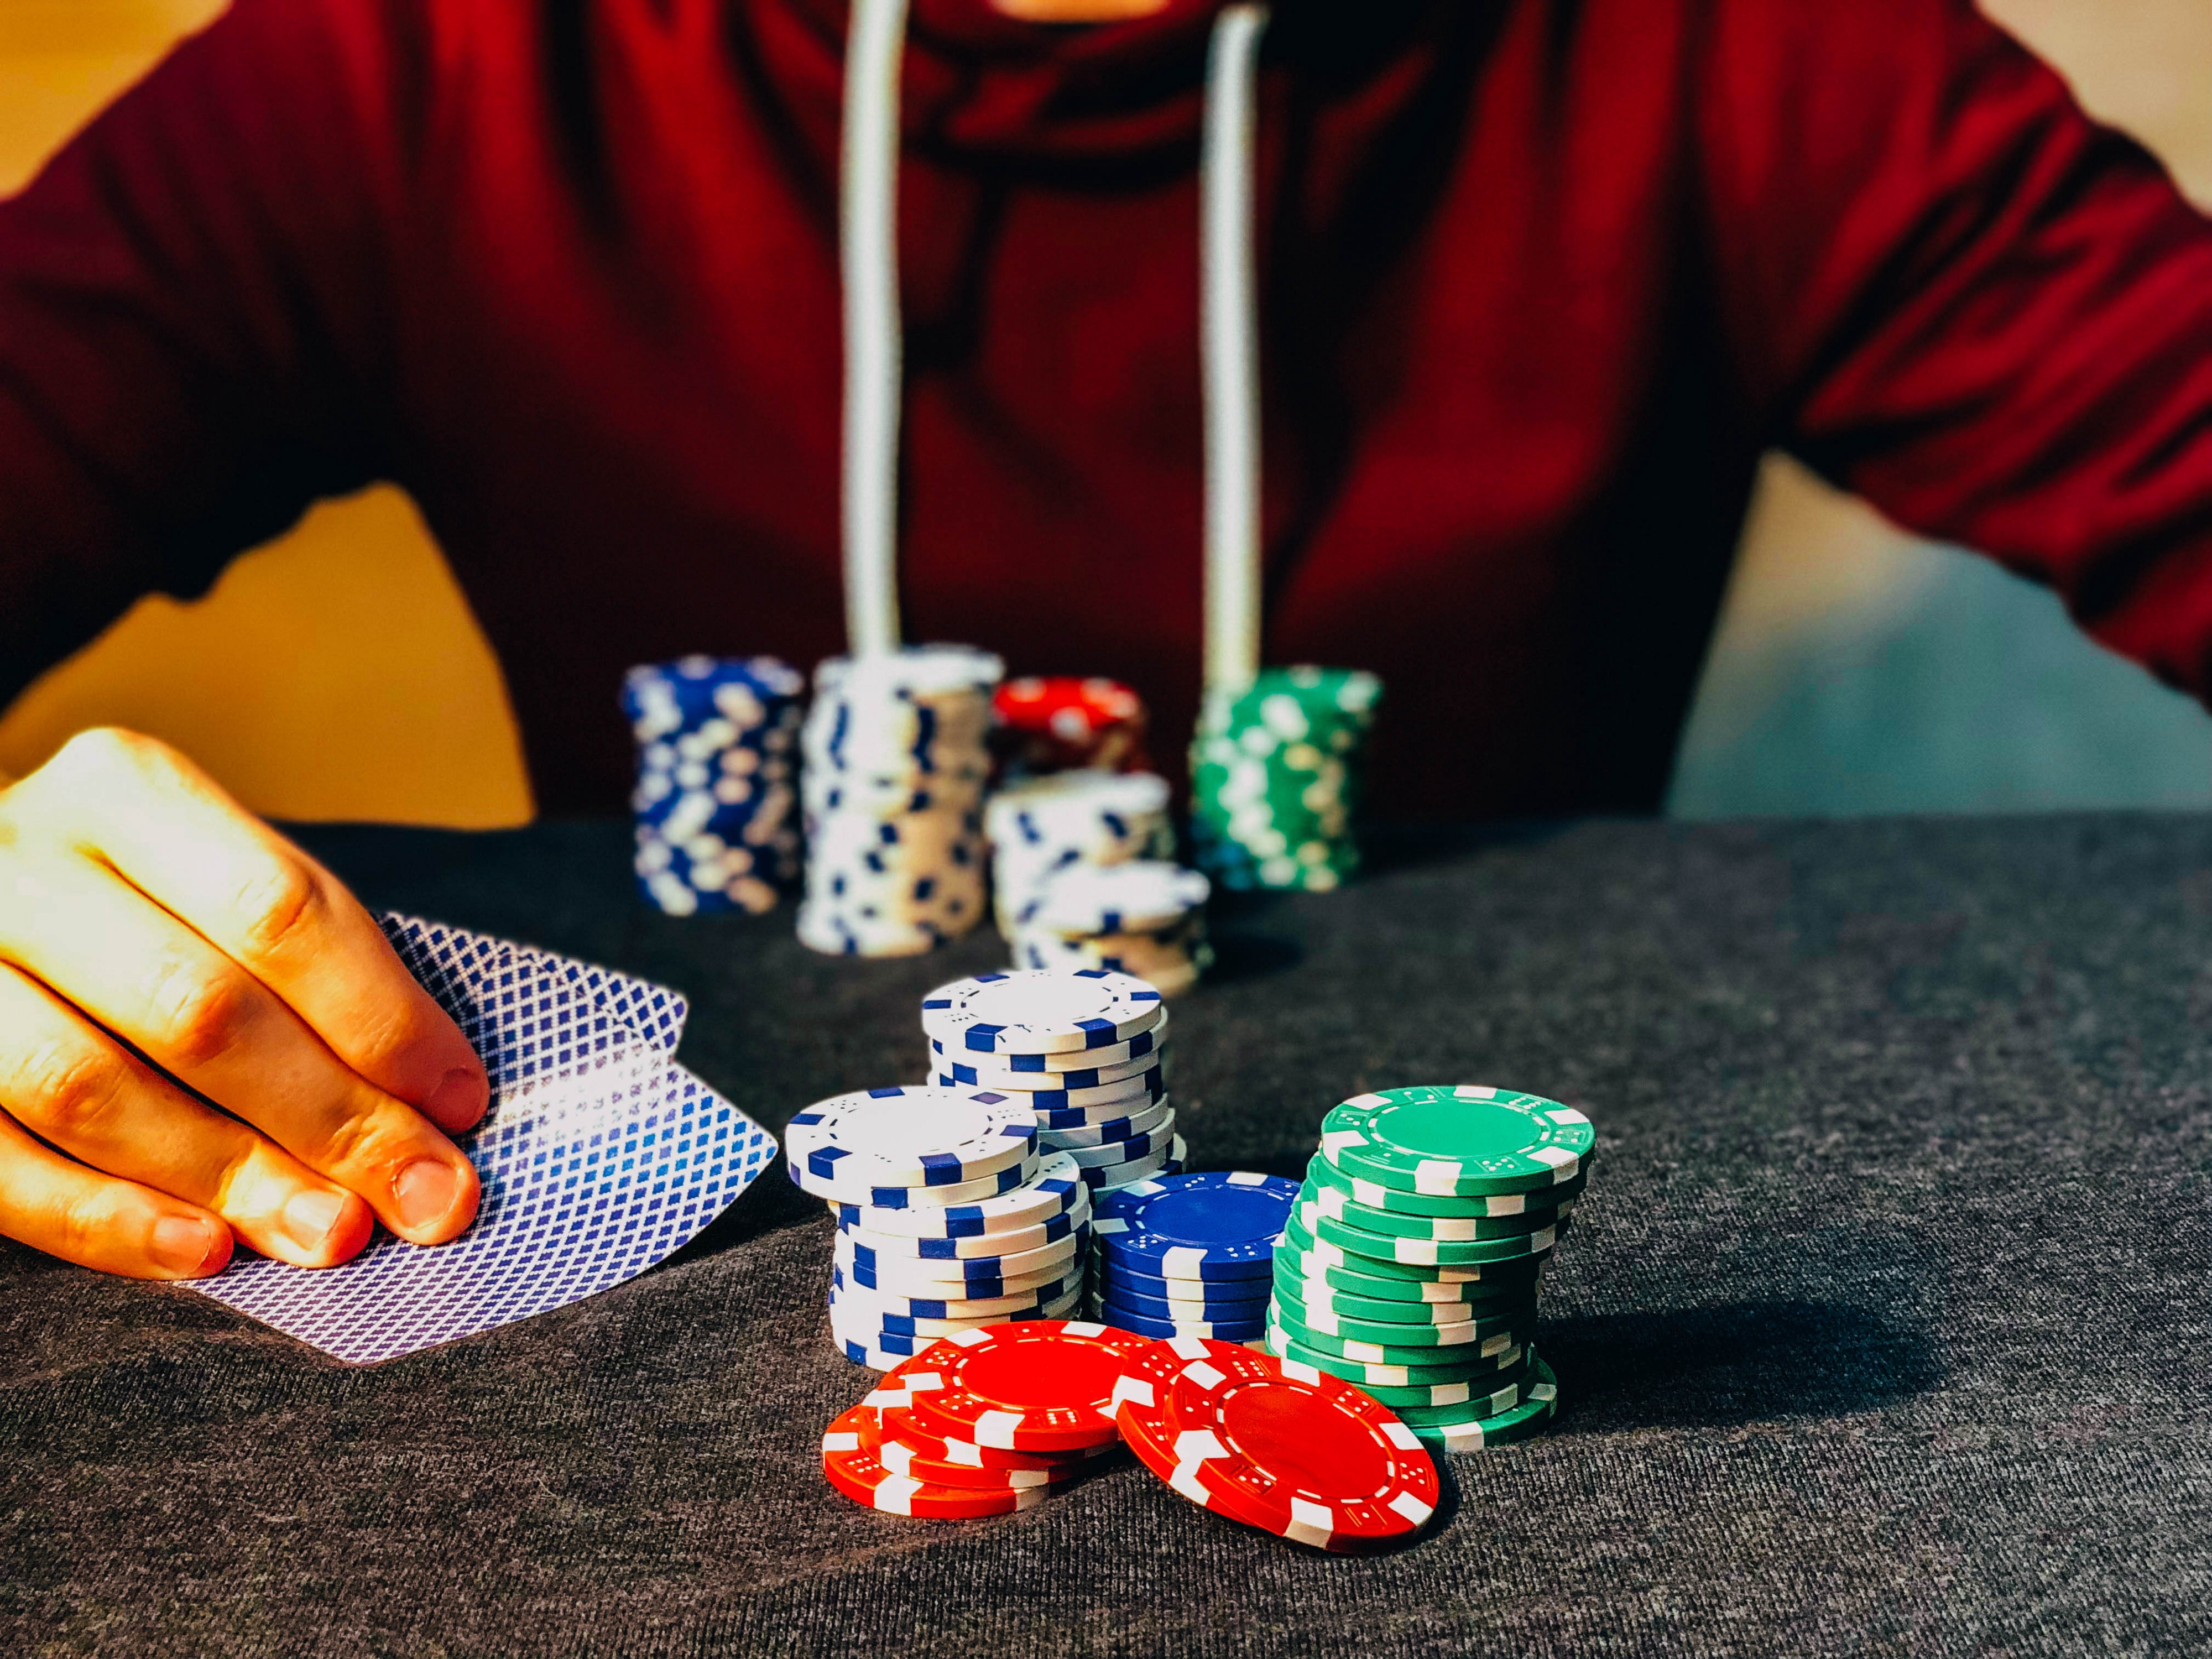 Building A Poker Ai Part 6 Beating Kuhn Poker With Cfr Using Python By Thomas Trenner Artificial Intelligence In Plain English